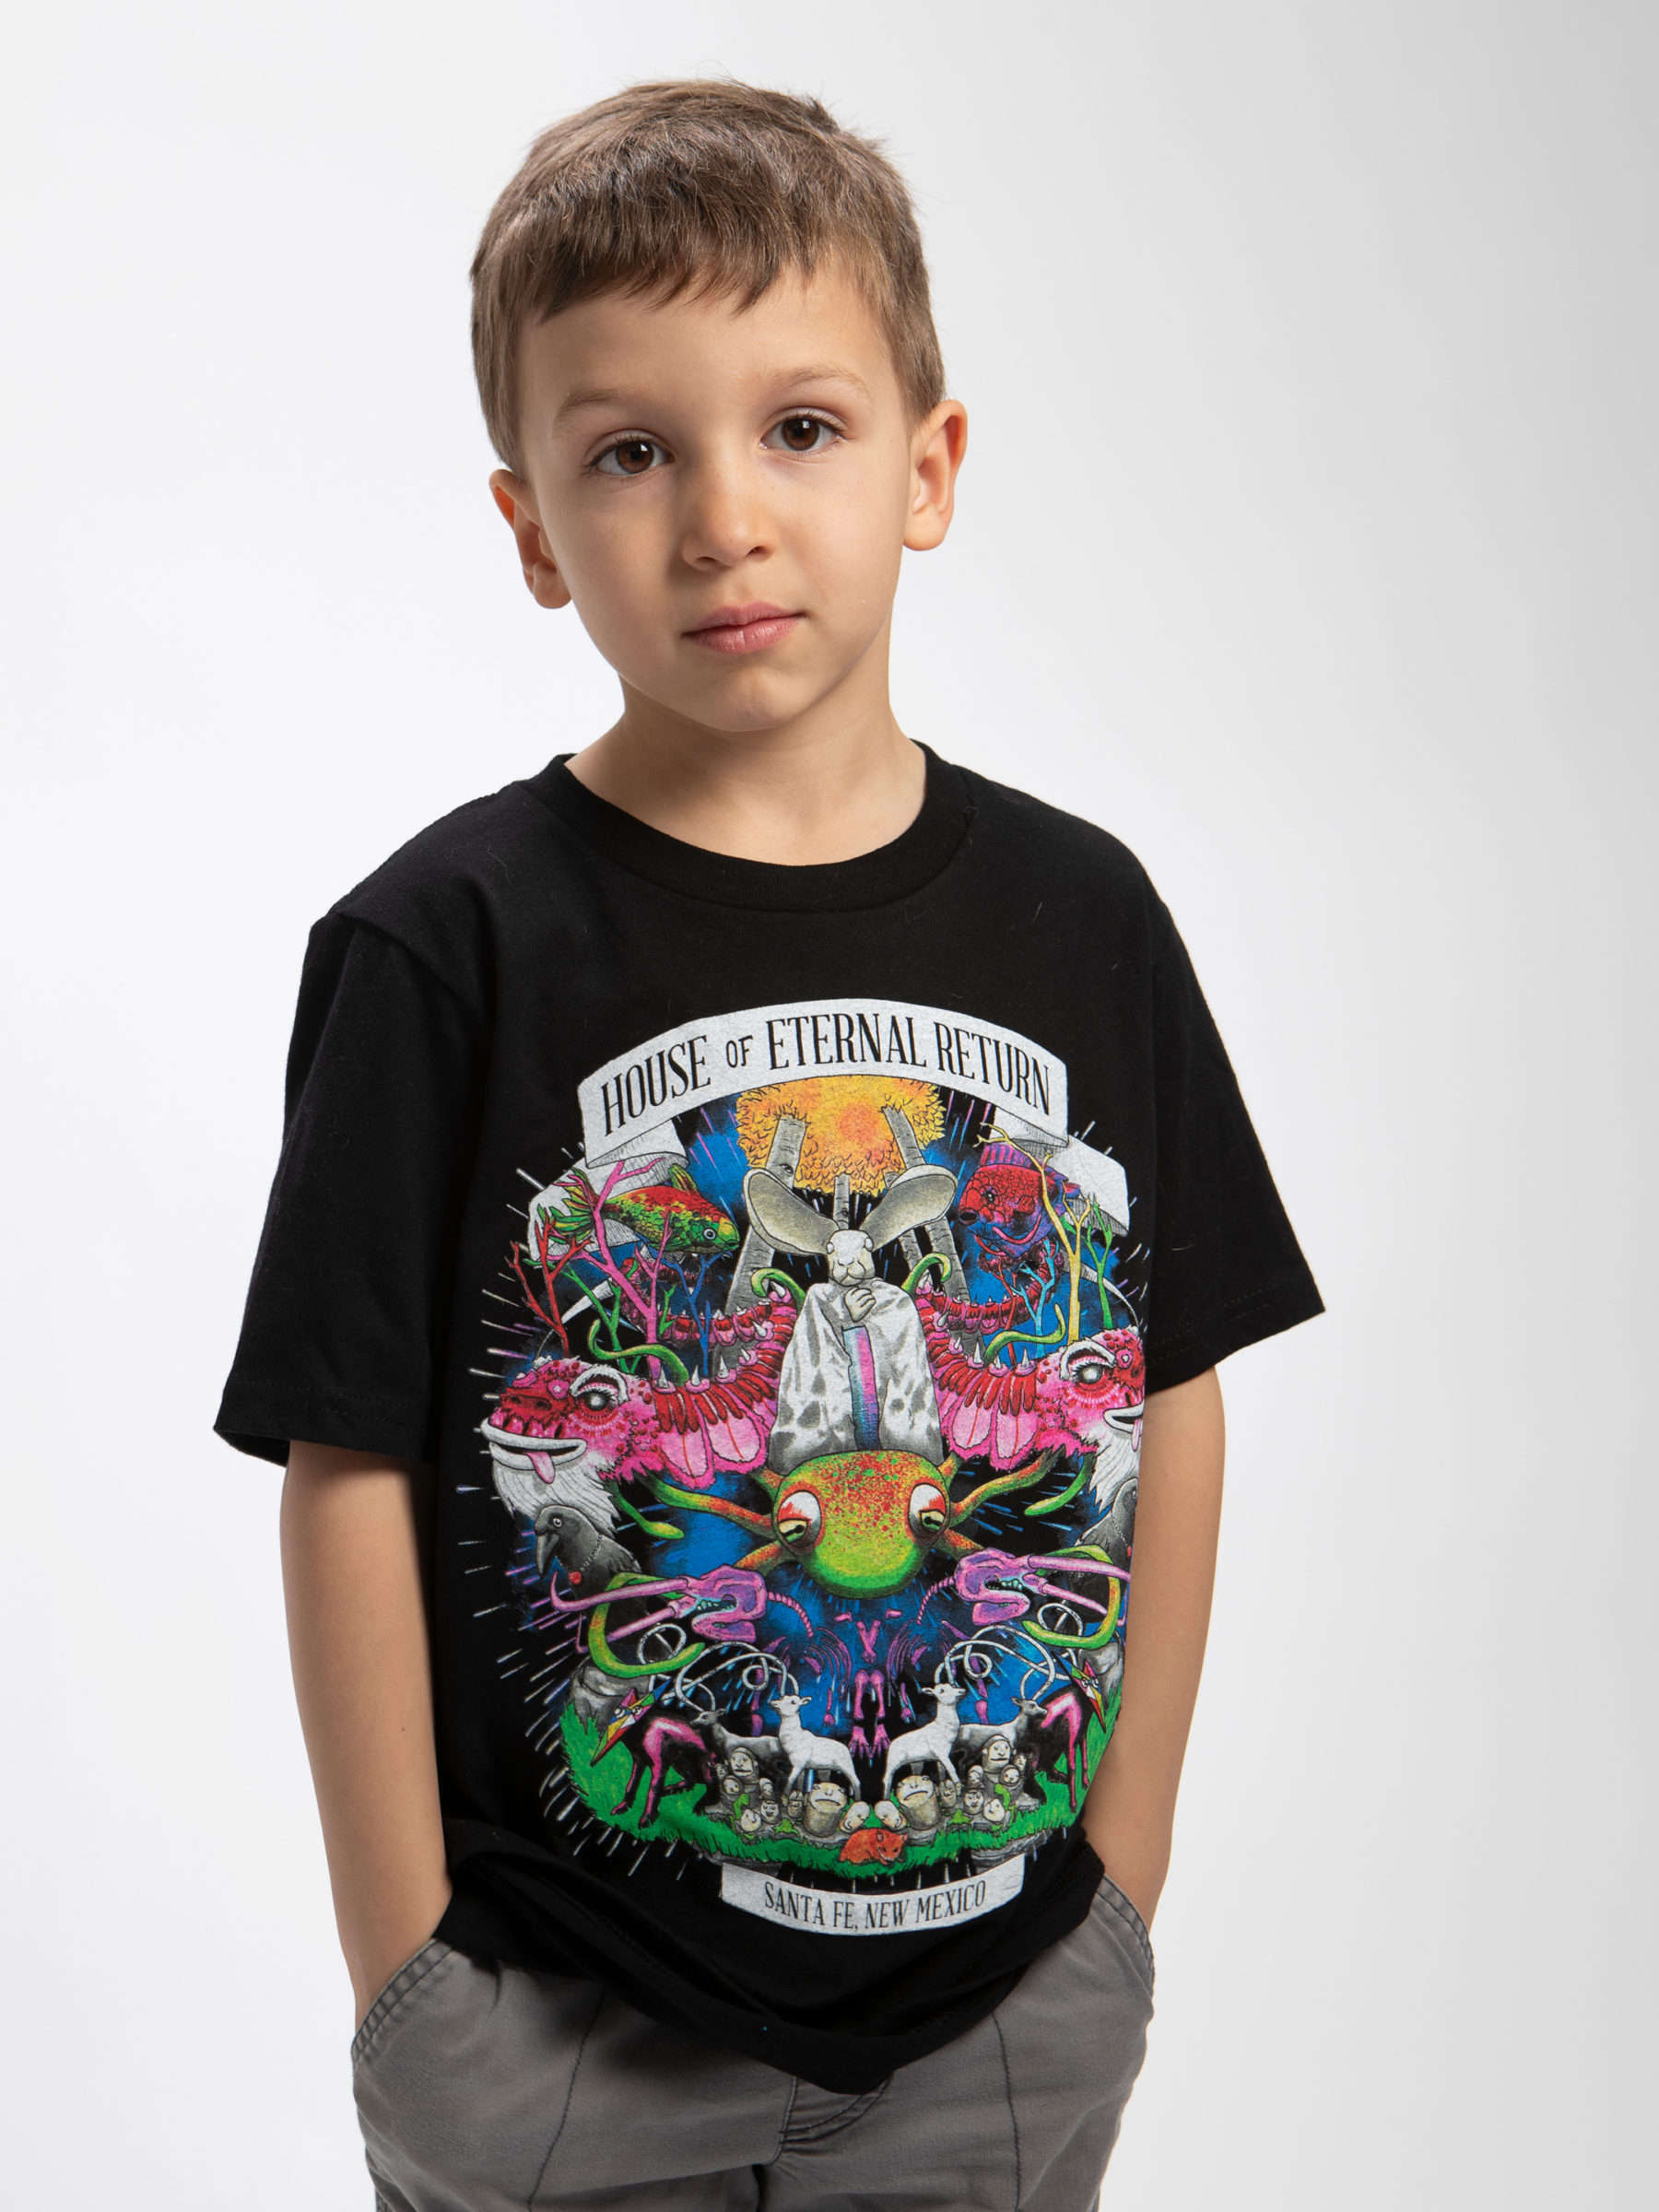 The Meow Wolf Creature t shirt